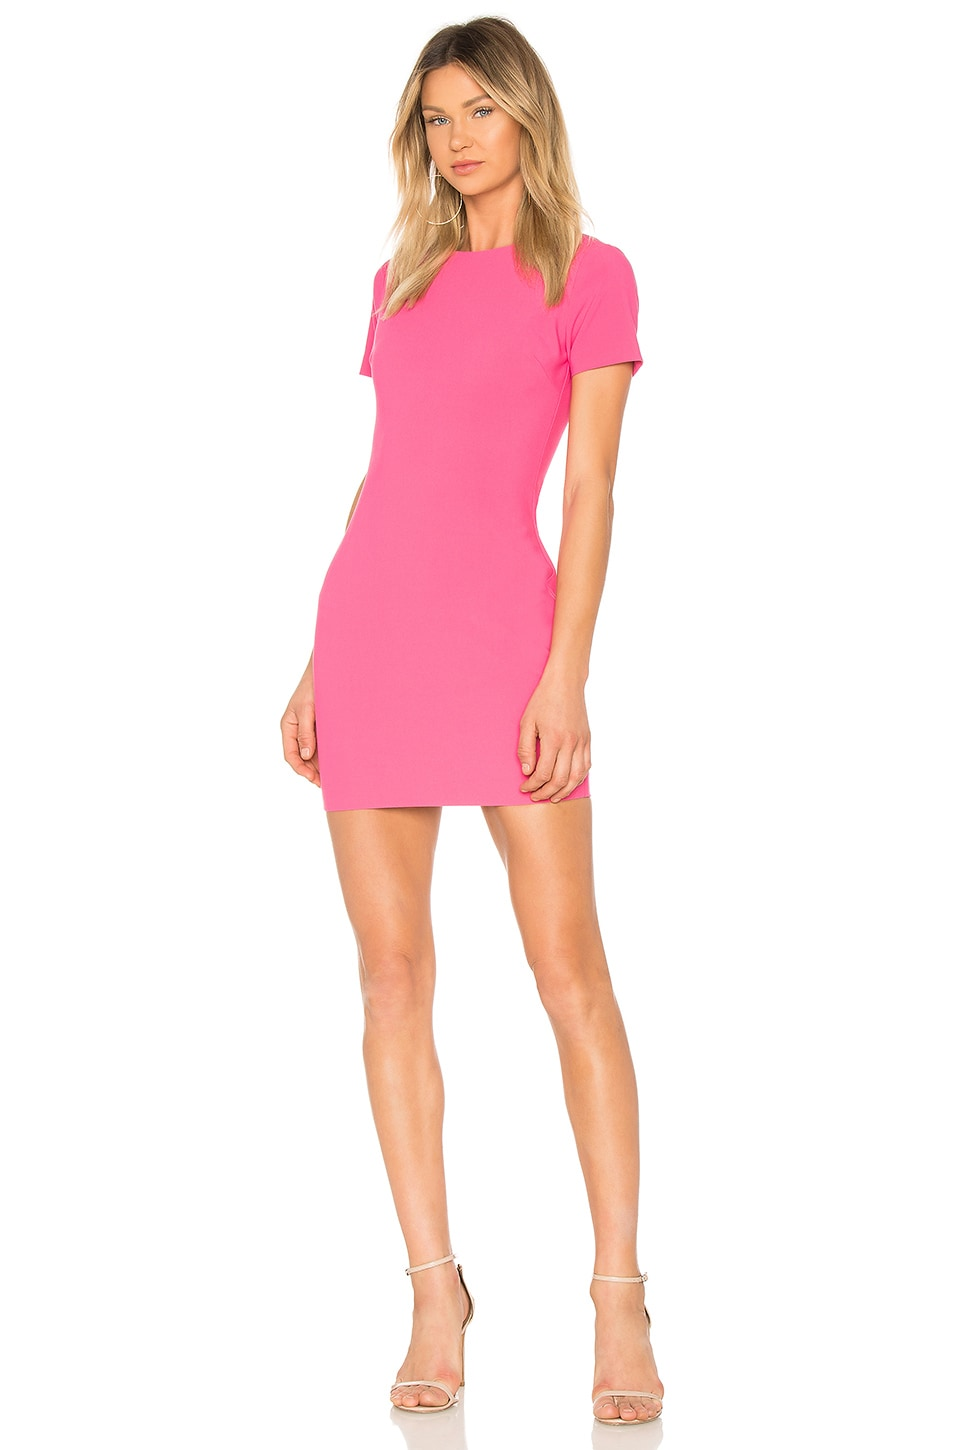 LIKELY Manhattan Dress in Pink Flambe